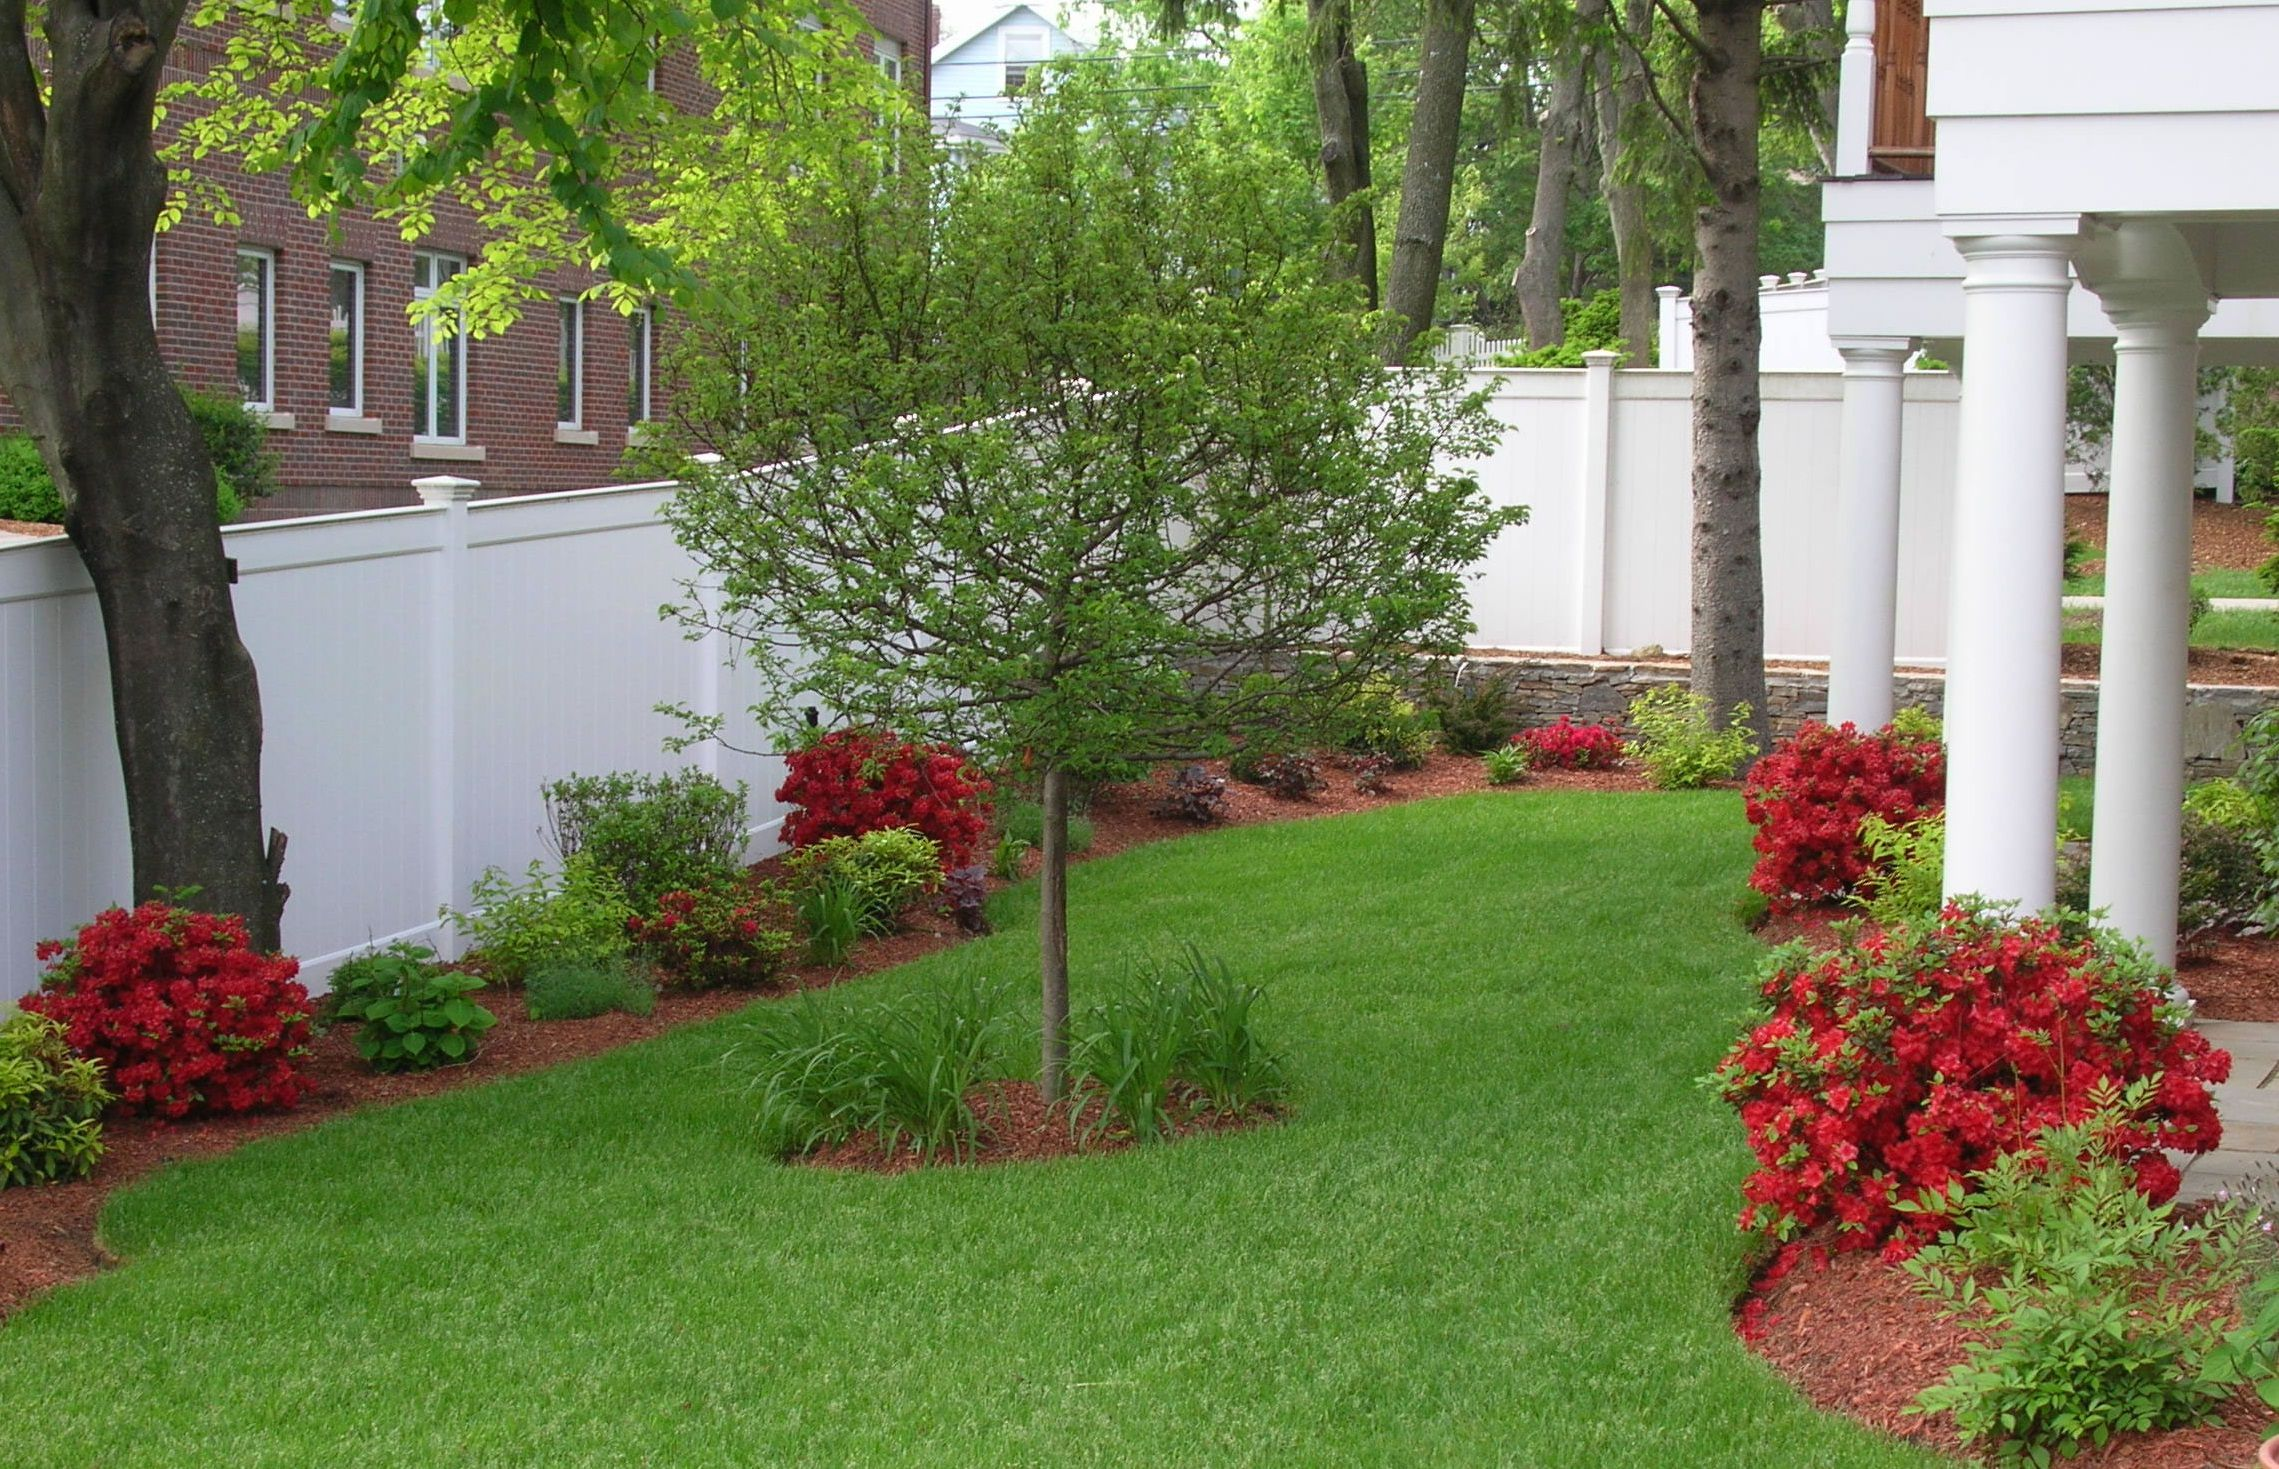 Uncommon Red Flowers near Fresh Grass for Backyard Garden with White Fence